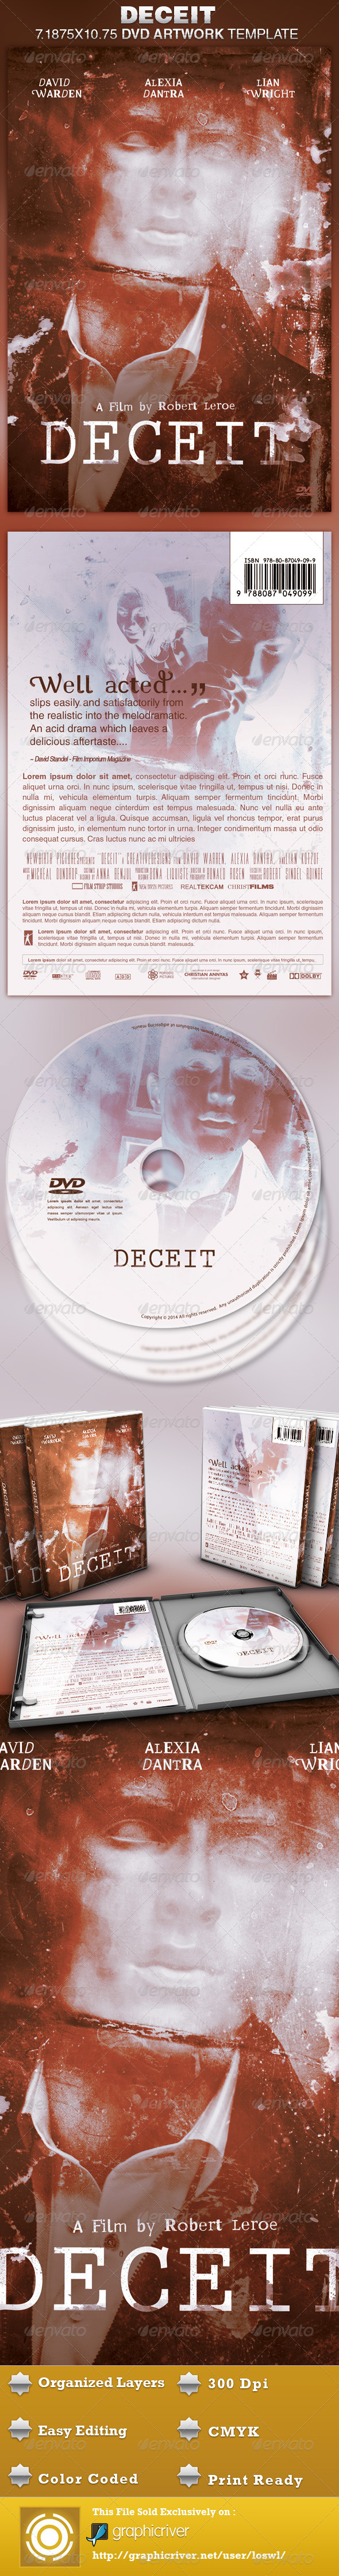 Deceit DVD Artwork Template - CD & DVD Artwork Print Templates